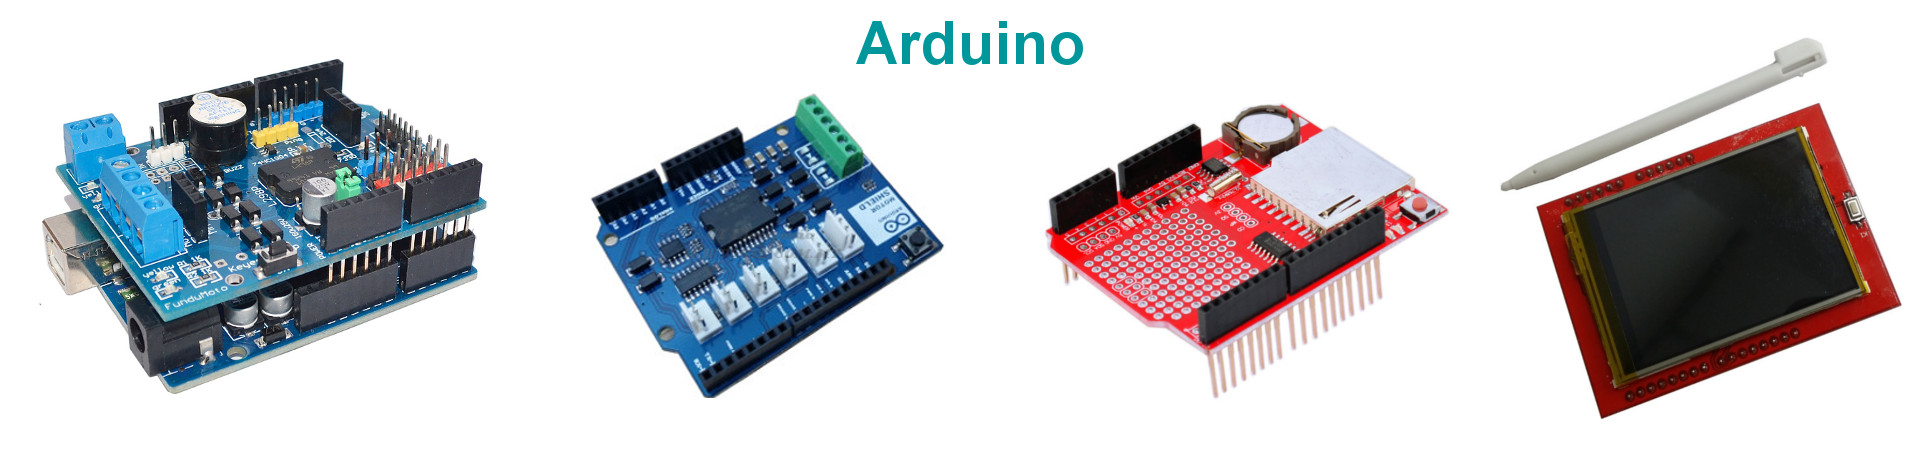 Gi Electronic Robotics Kits Electronics Tools Arduino Uno Malaysia Hobby Student Projects Circuits Lilypad Sensors Modules Raspberry Pi Wireless Gsm Gps Lcd Board